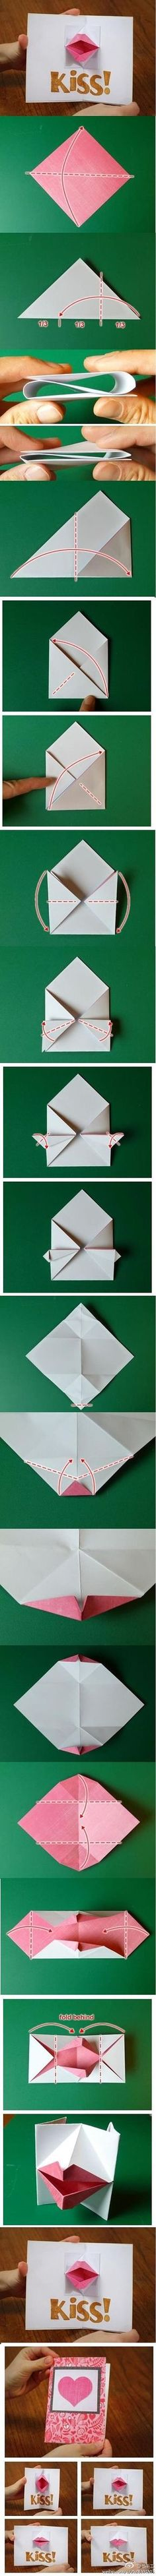 how to make a paper ninja star spinner